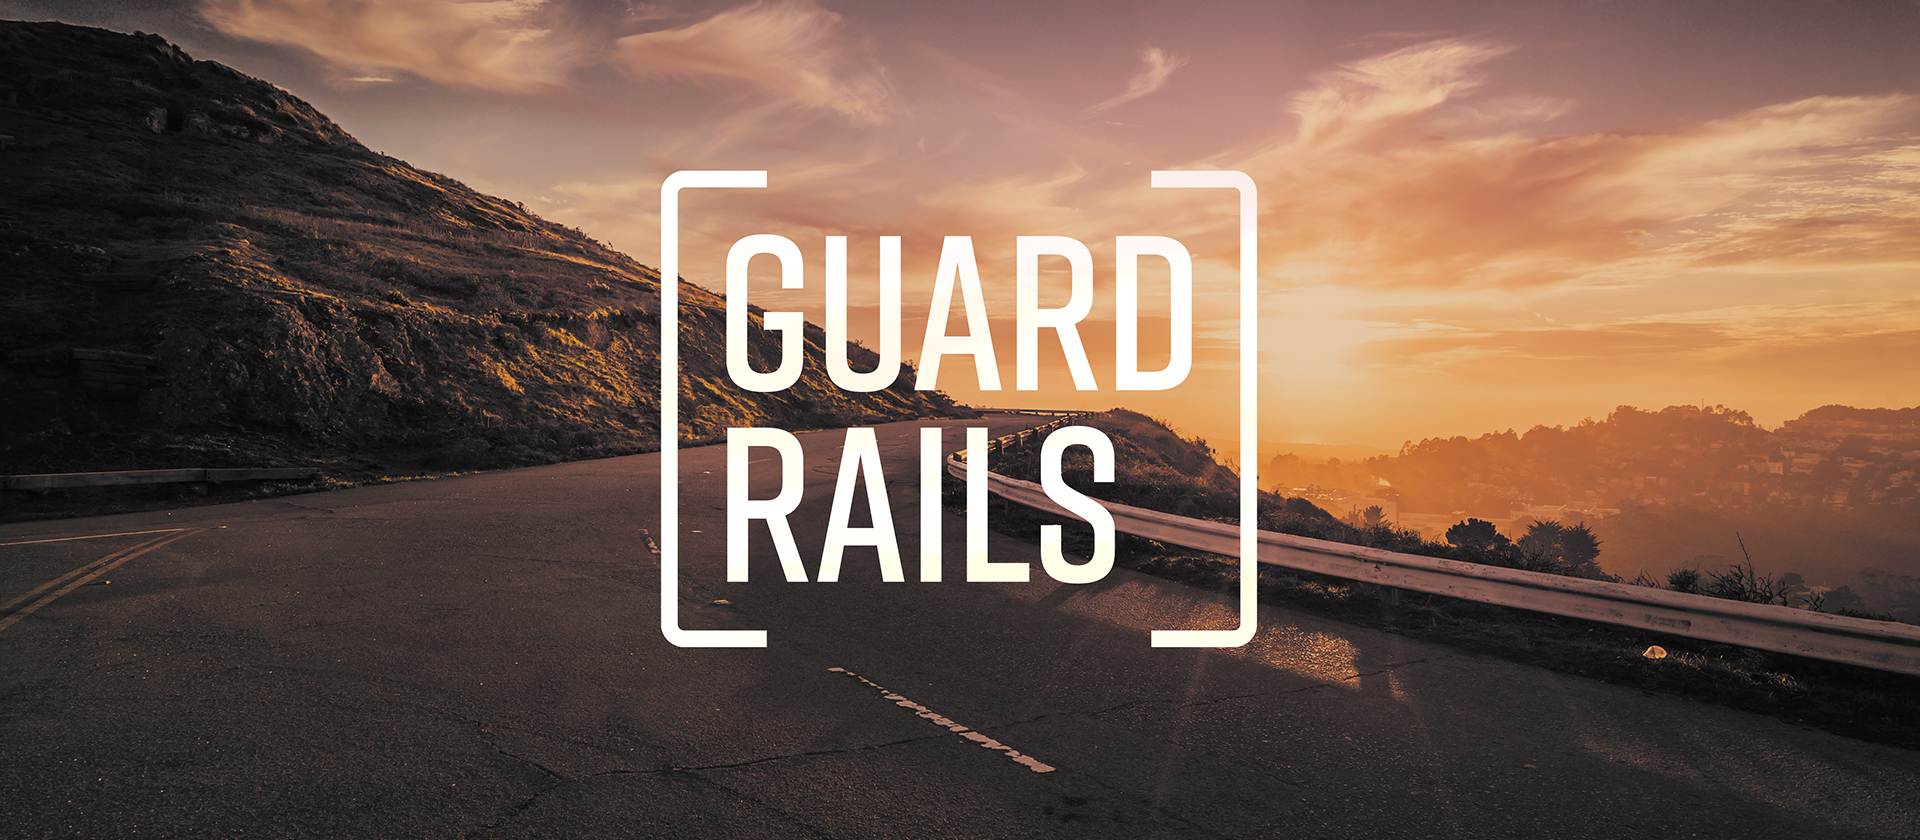 Guardrails_NPOCurrentMessage.jpg